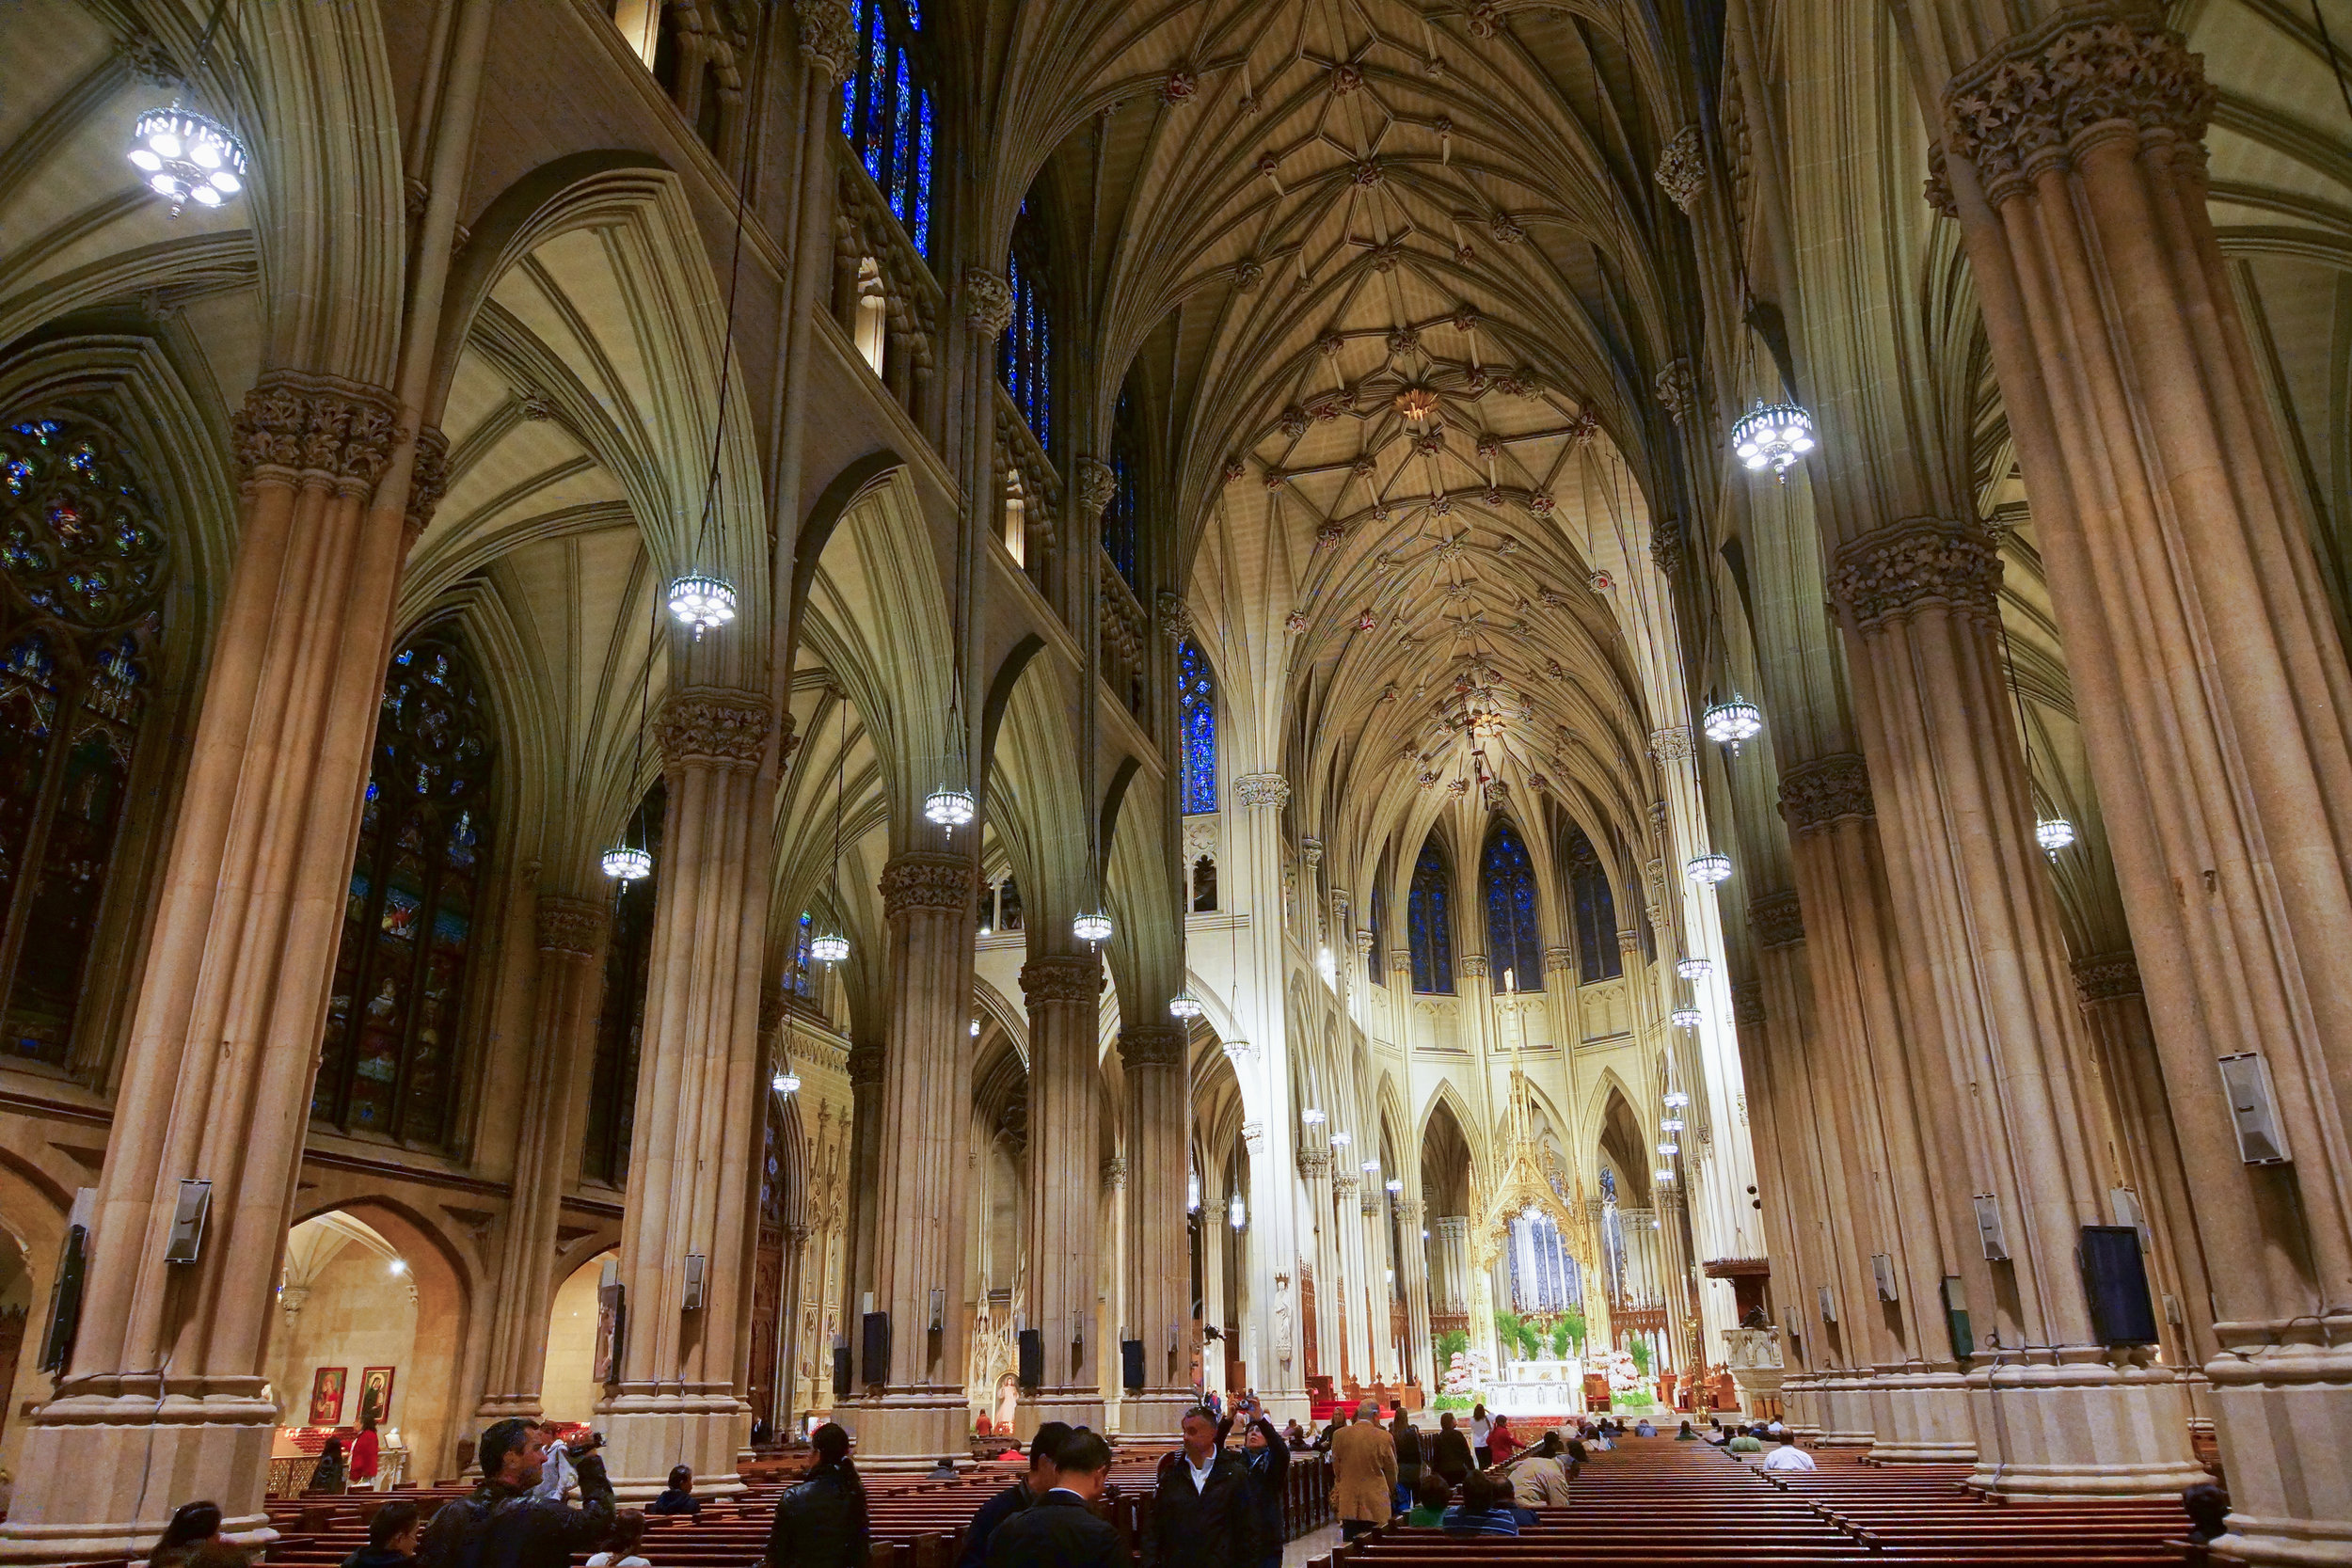 NYC_-_St._Patrick's_Cathedral_-_Interior.JPG